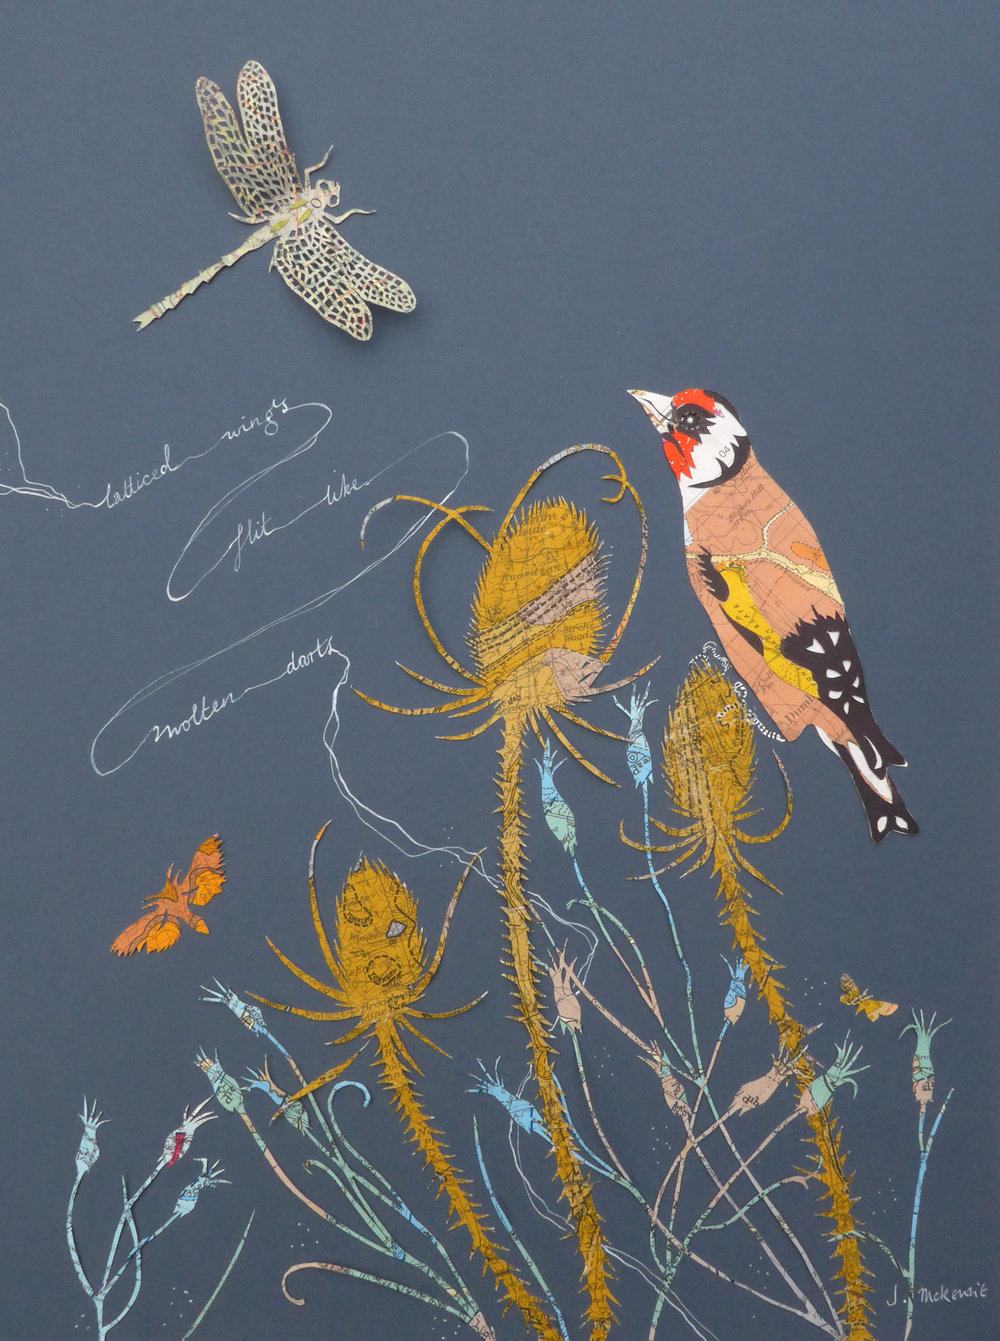 Goldfinch and Teasel hand cut vintage geological maps 30x40cm artwork size 33x43cm framed size £350